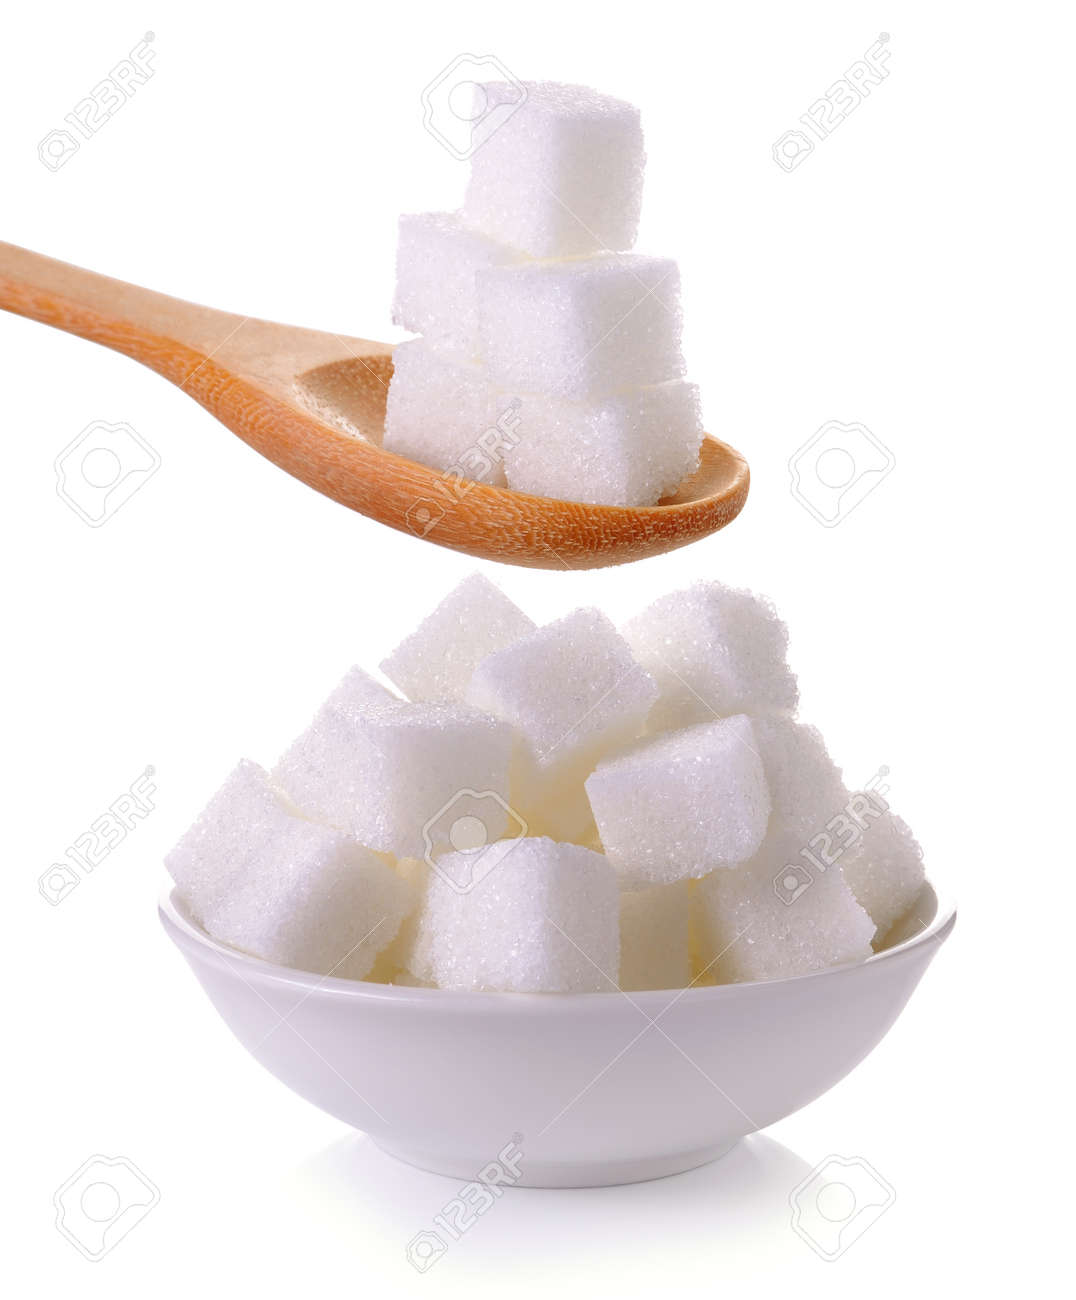 sugar cube in the spoon and bowl on white background - 48862726